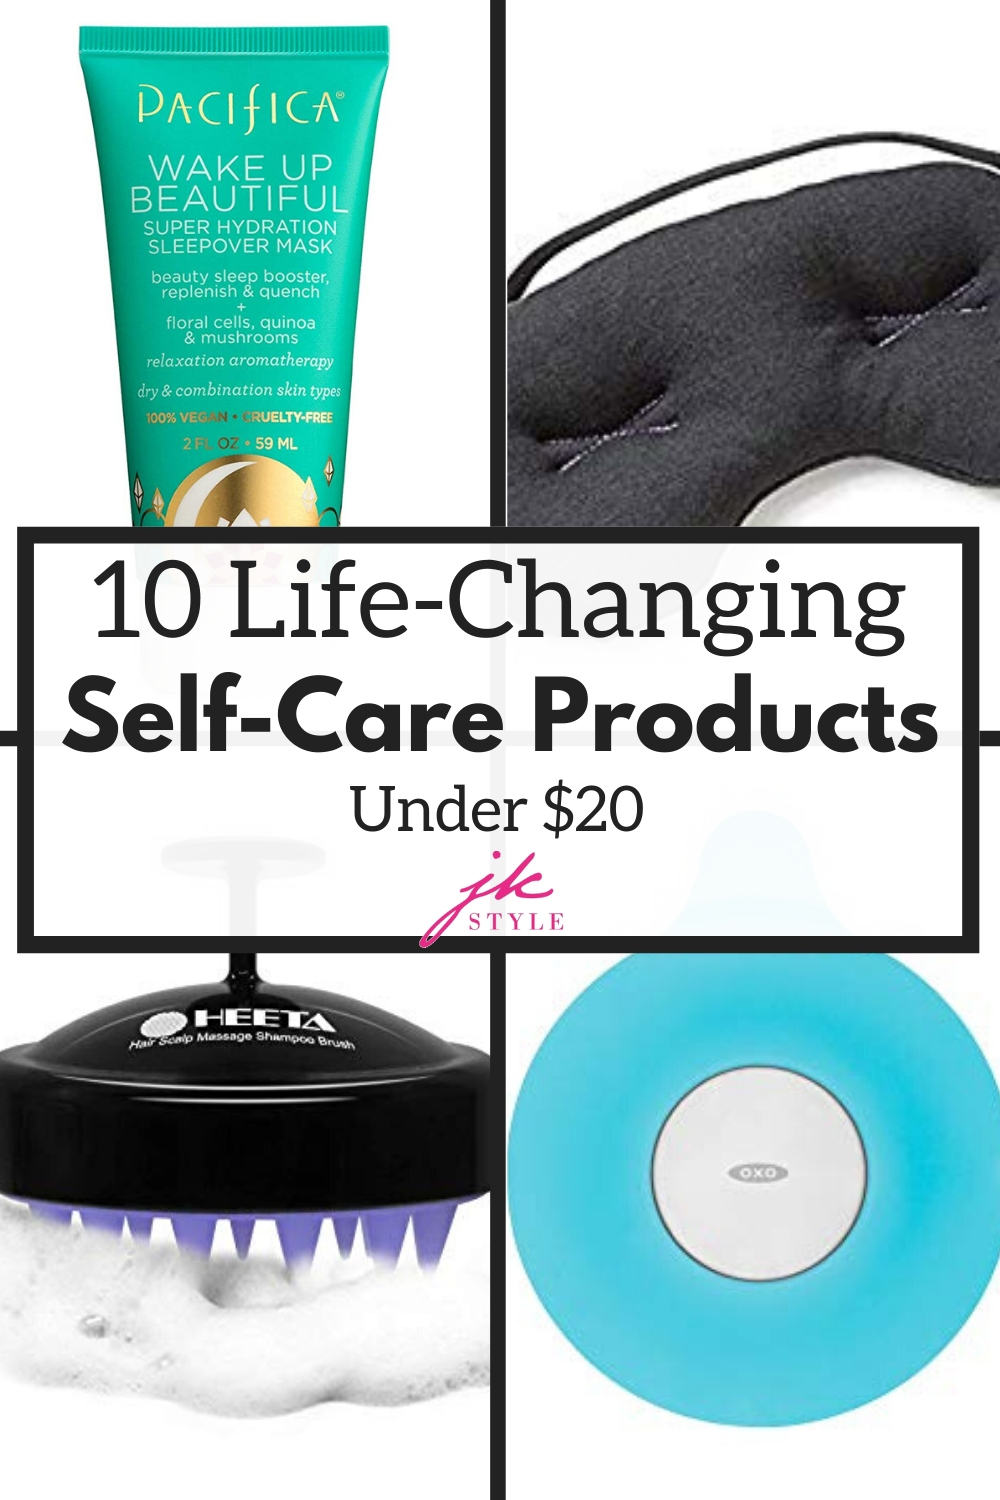 best self care products under 20 - JK Style